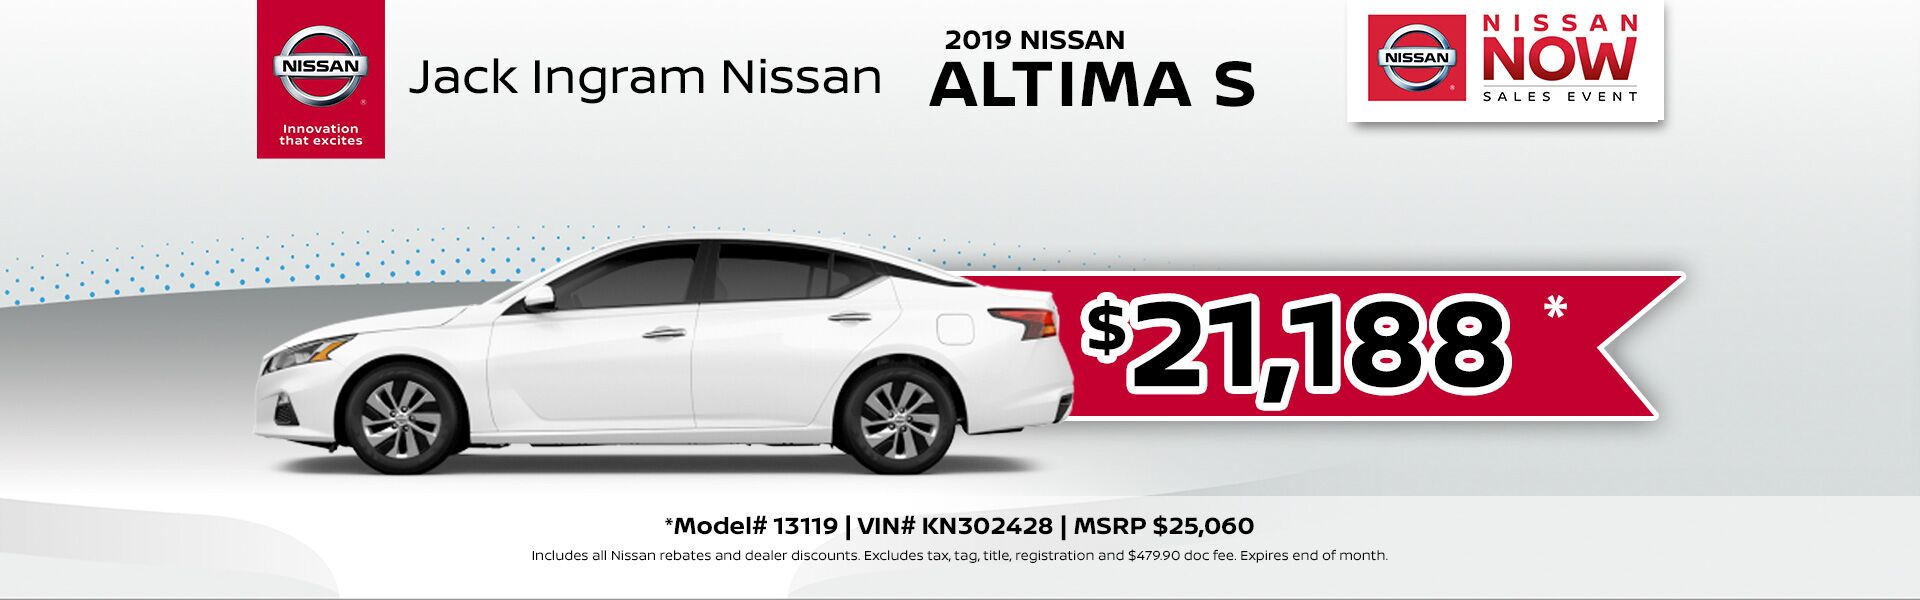 Nissan Altima March